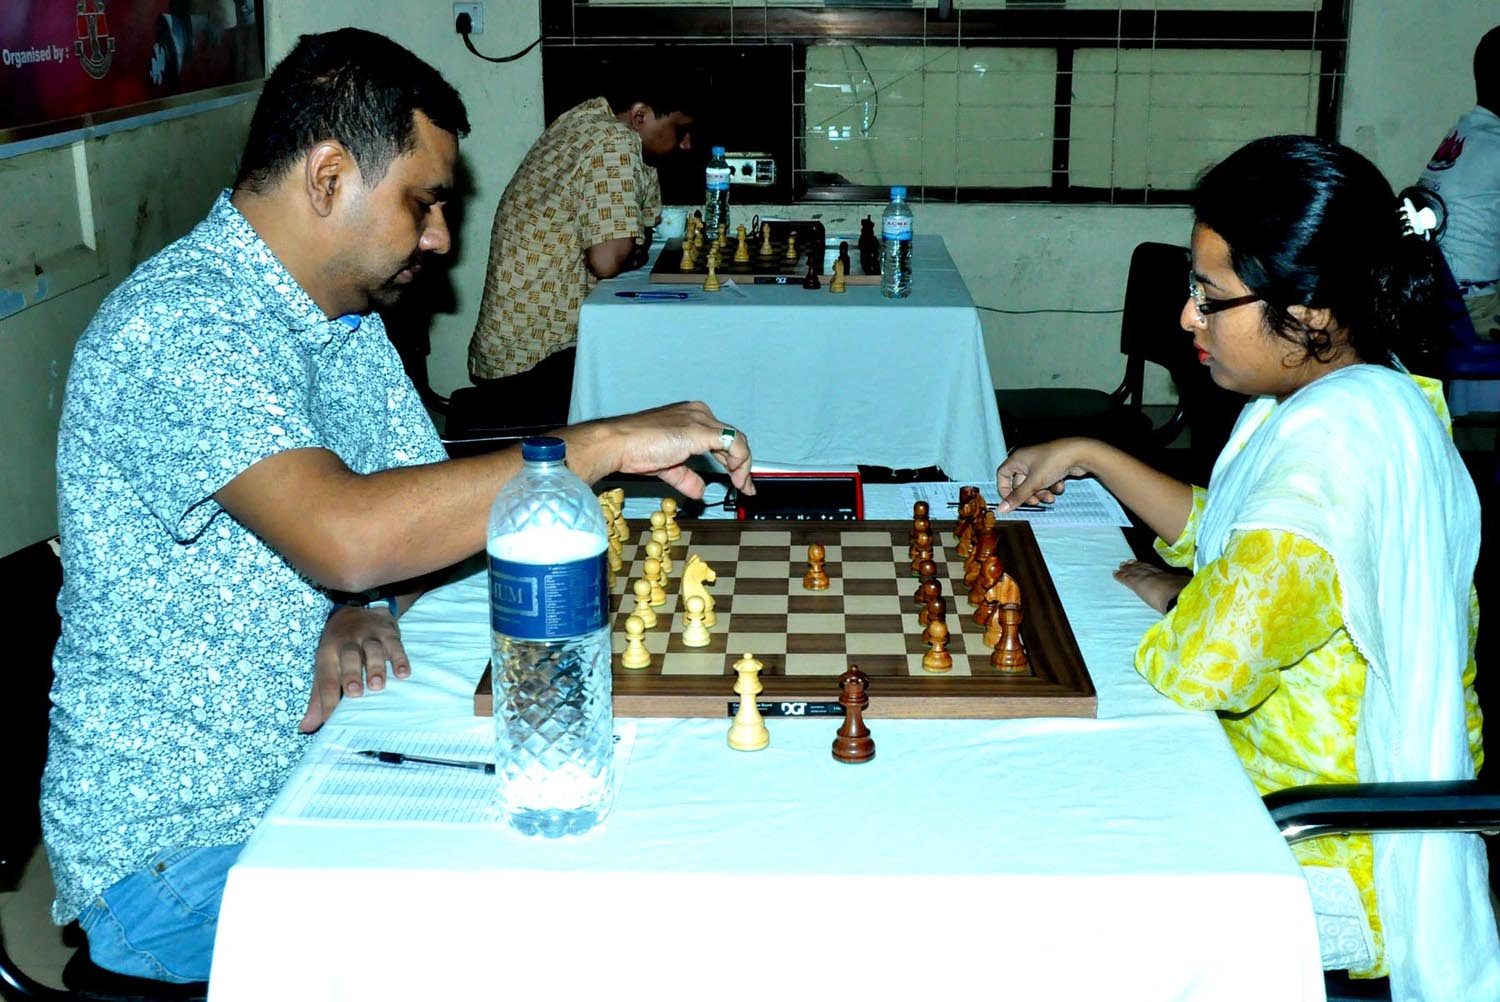 Grand Master Ziaur Rahman Zia (left) moves a pawn against his opponent during the match of the Saif Powertec International Rating Tournament at Bangladesh Chess Federation hall-room on Sunday.